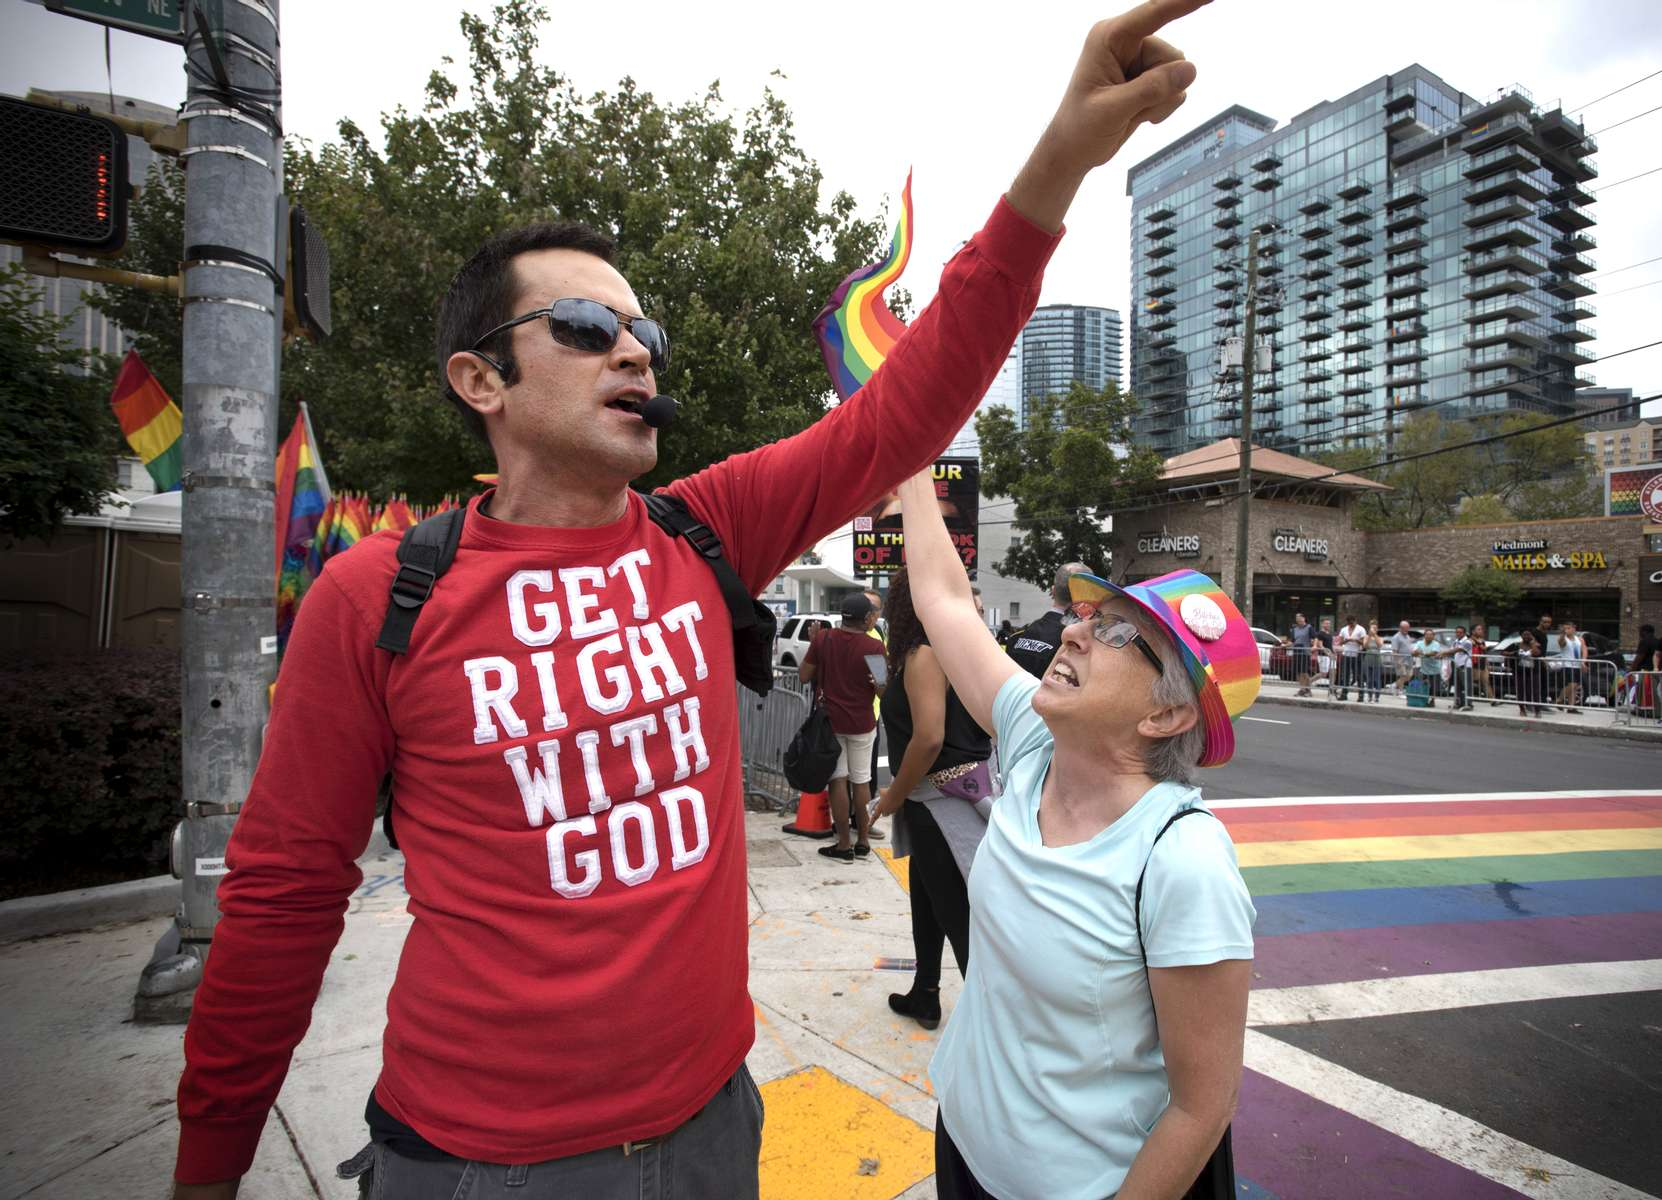 October 14, 2017 - Atanta, GA - A street evangelist preaches from street corner in center of Atlanta's midtown, 'ground zero' for the city's LGBTQ community. A senior citizen who is a strong gay and transgender rights advocate tried to initiate a conversation with the preacher but was unsuccessful. (Credit Image: © Robin Rayne/ZUMA Wire)